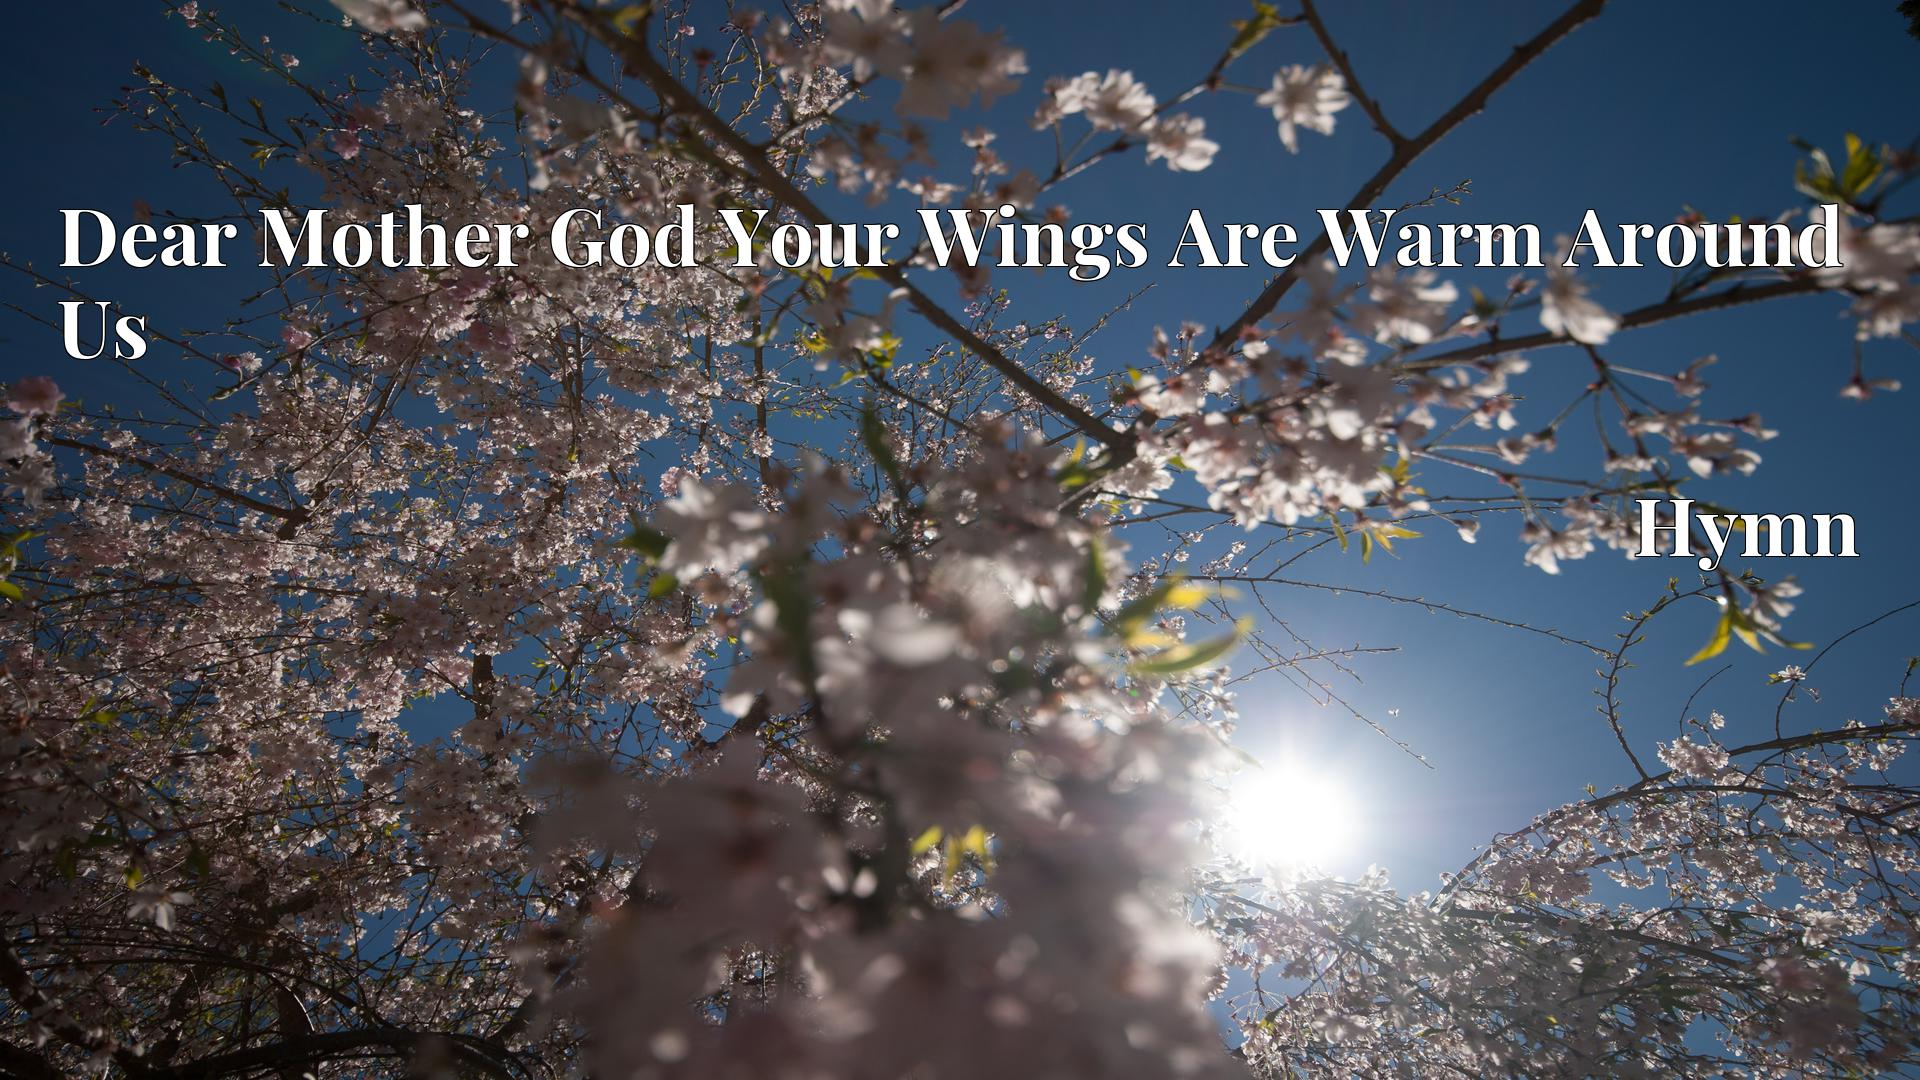 Dear Mother God Your Wings Are Warm Around Us - Hymn